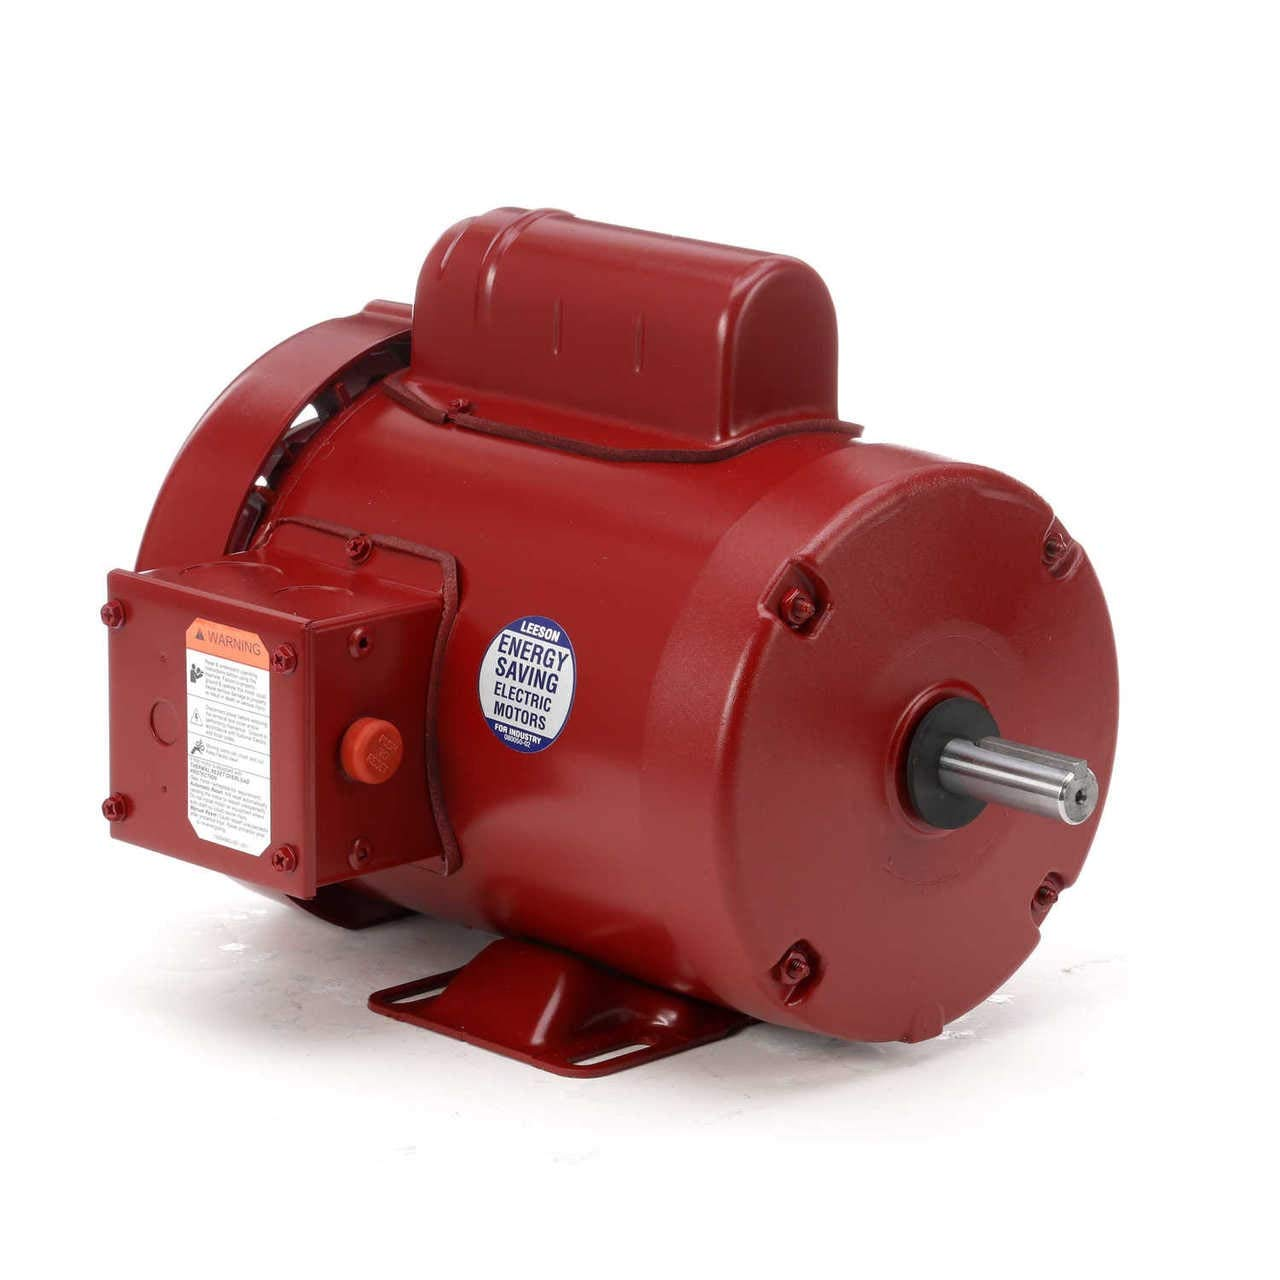 Leeson 110088 AC Single Phase Agricultural Duty Motors